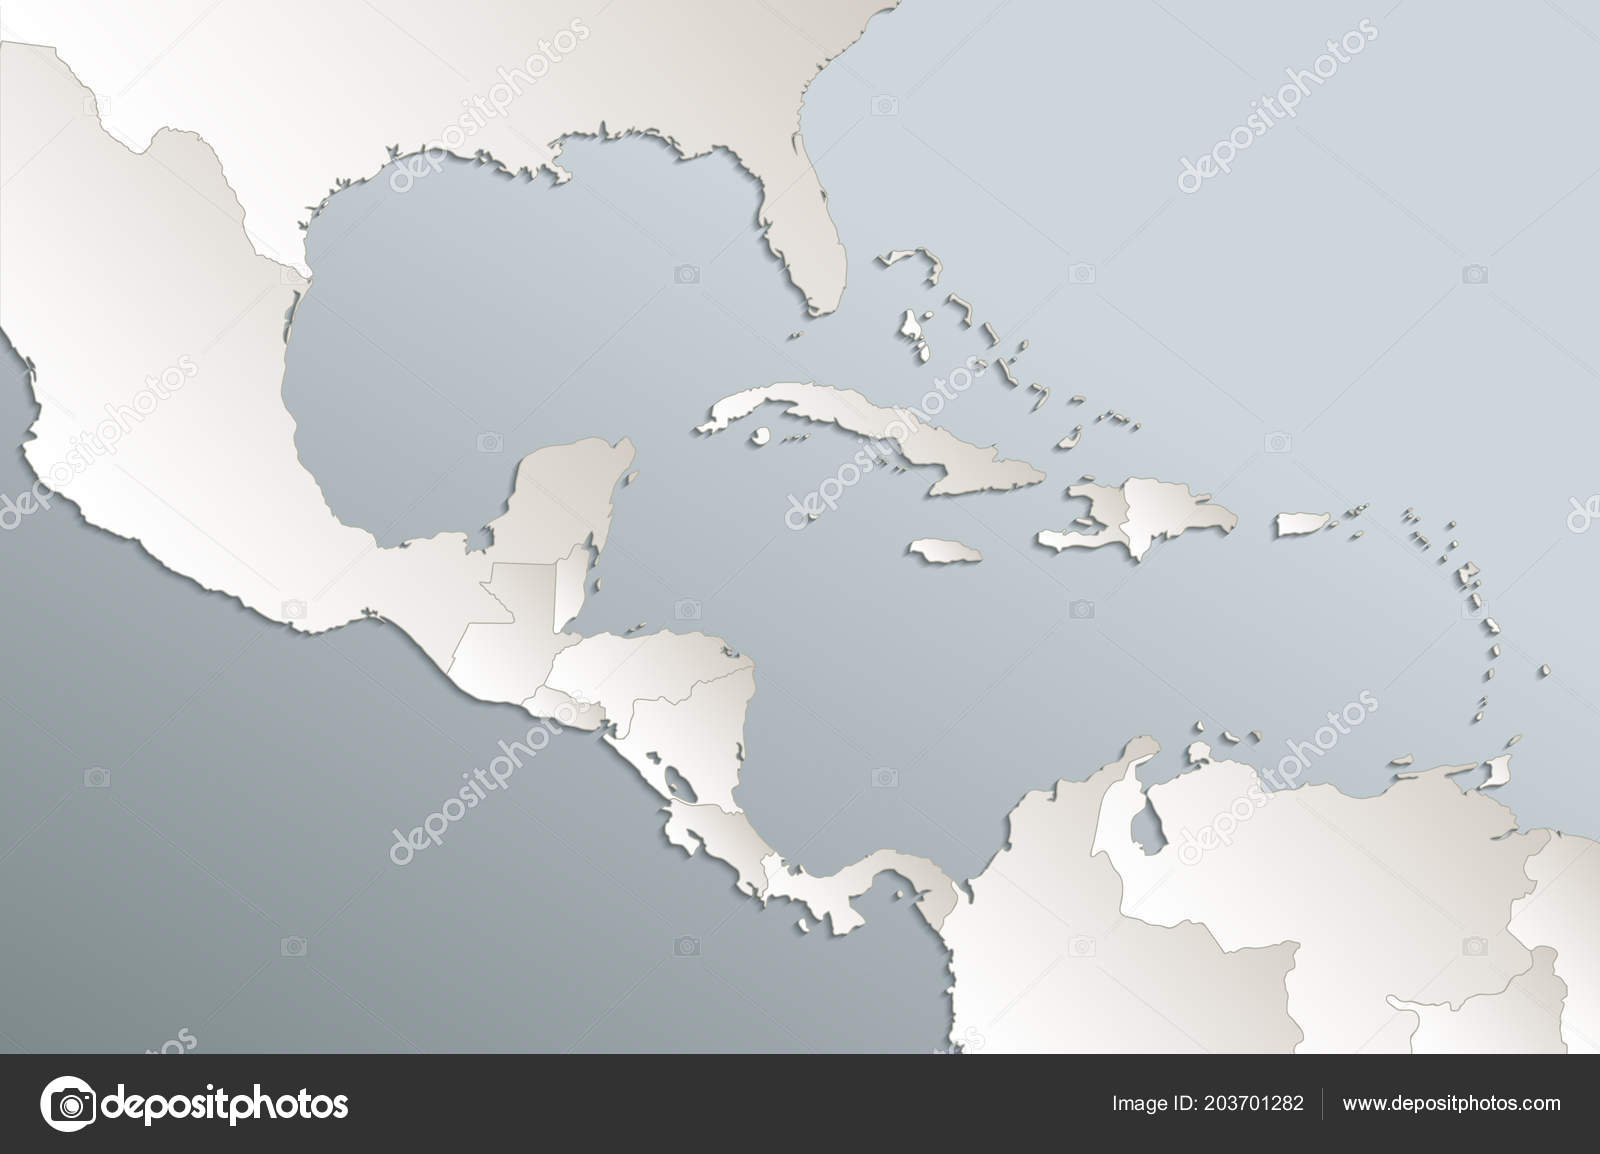 Caribbean Islands Central America Map State Names Separate ...